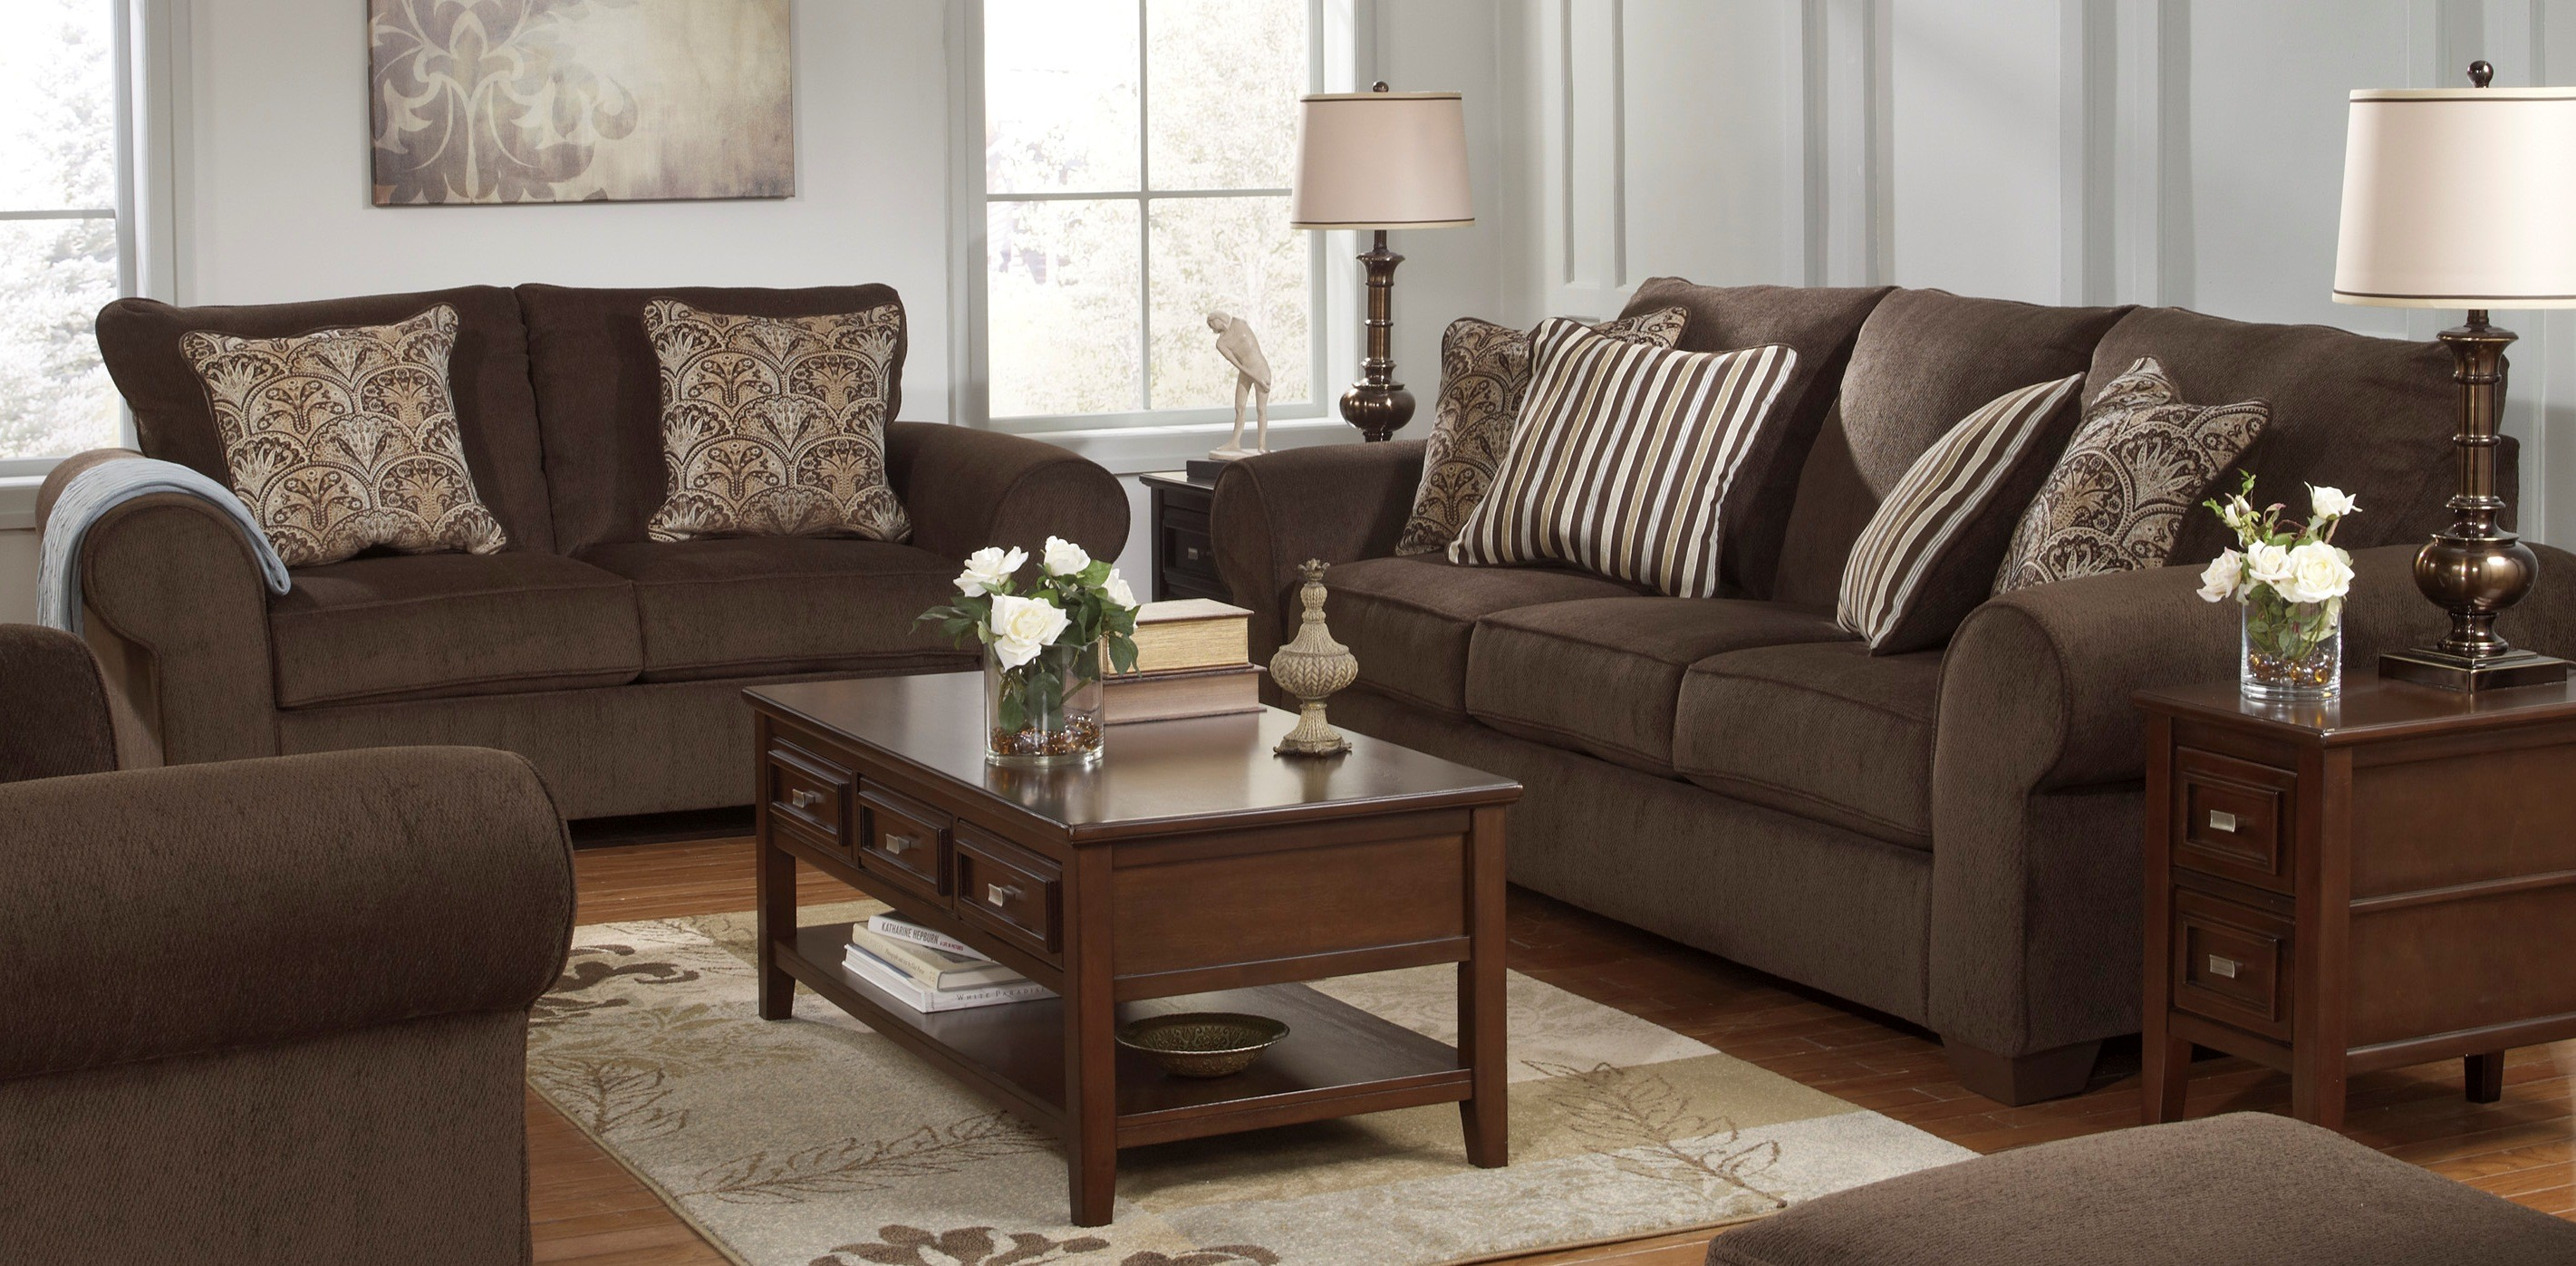 Living Room Set Sale 4610135138 pertaining to Small Living Room Sets